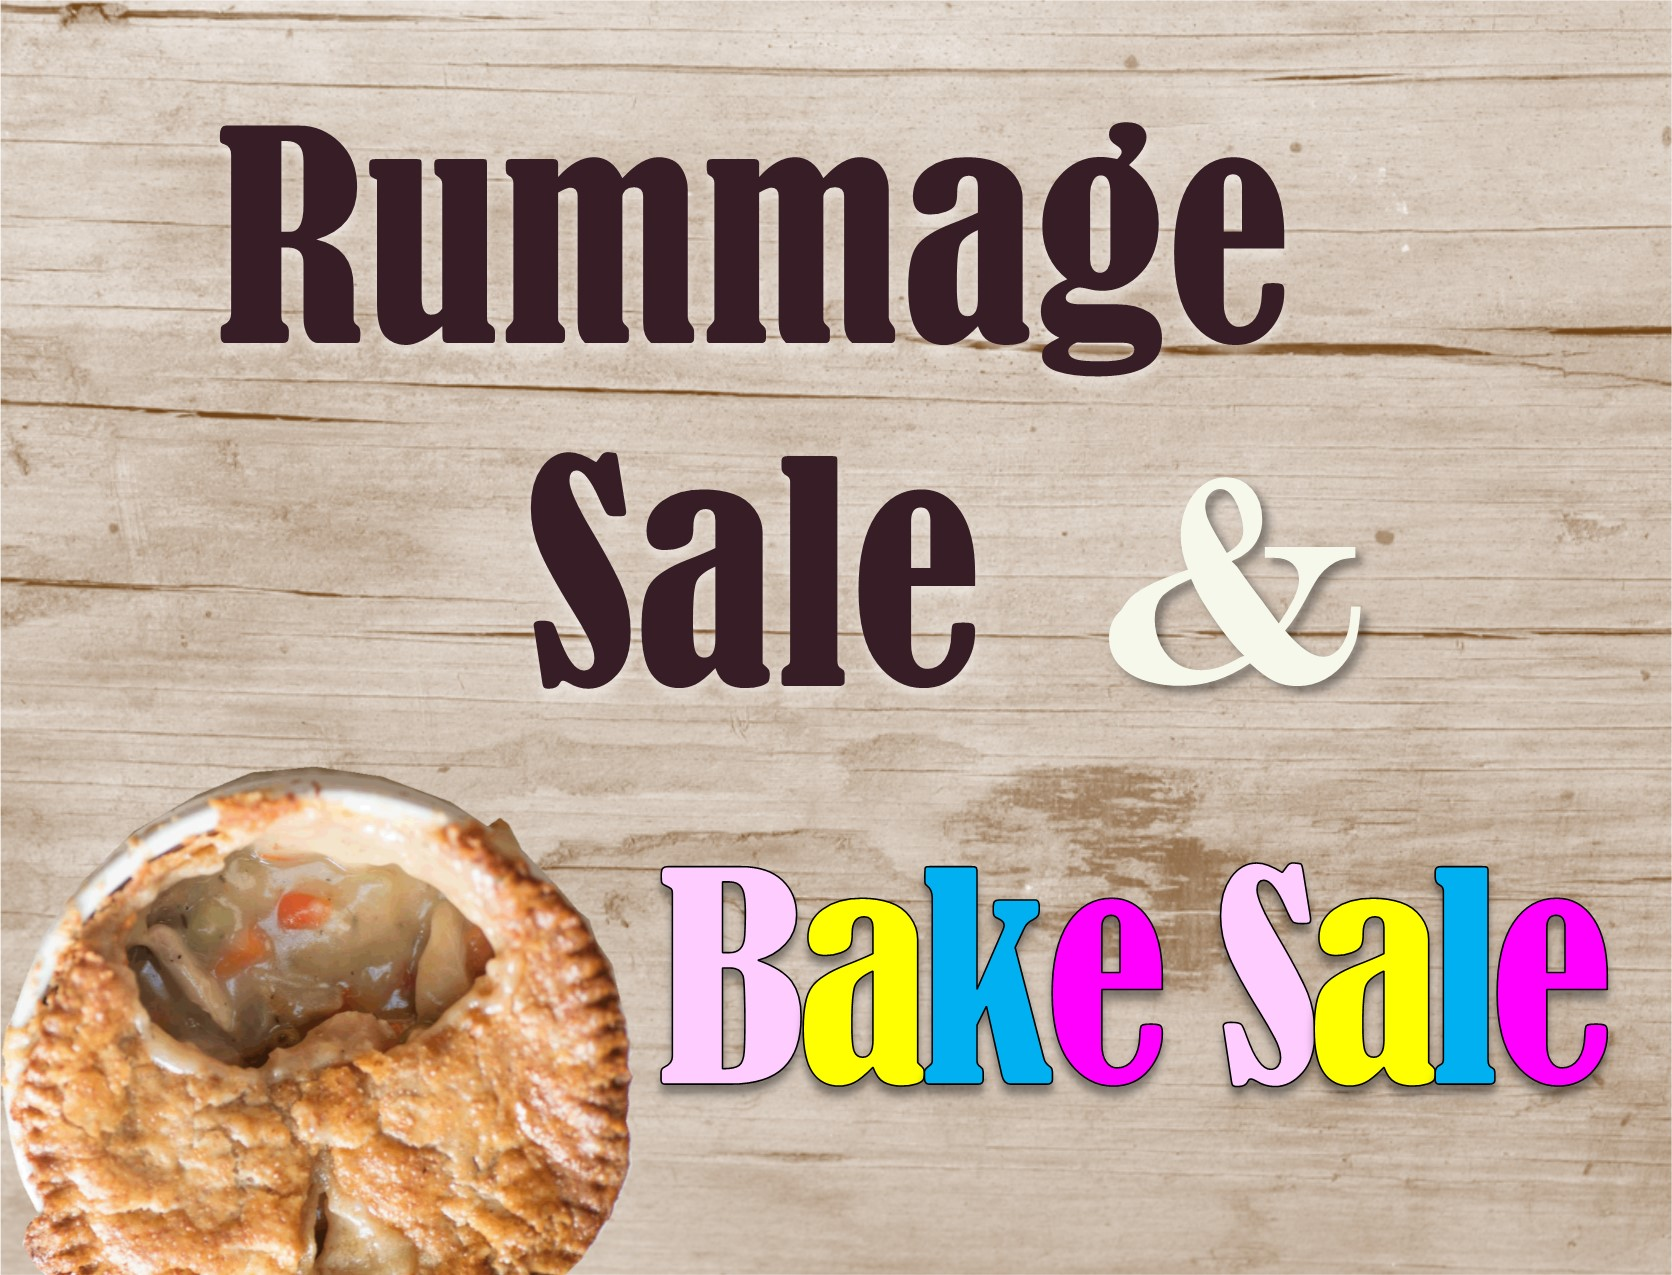 keokuk events rummage bake sale